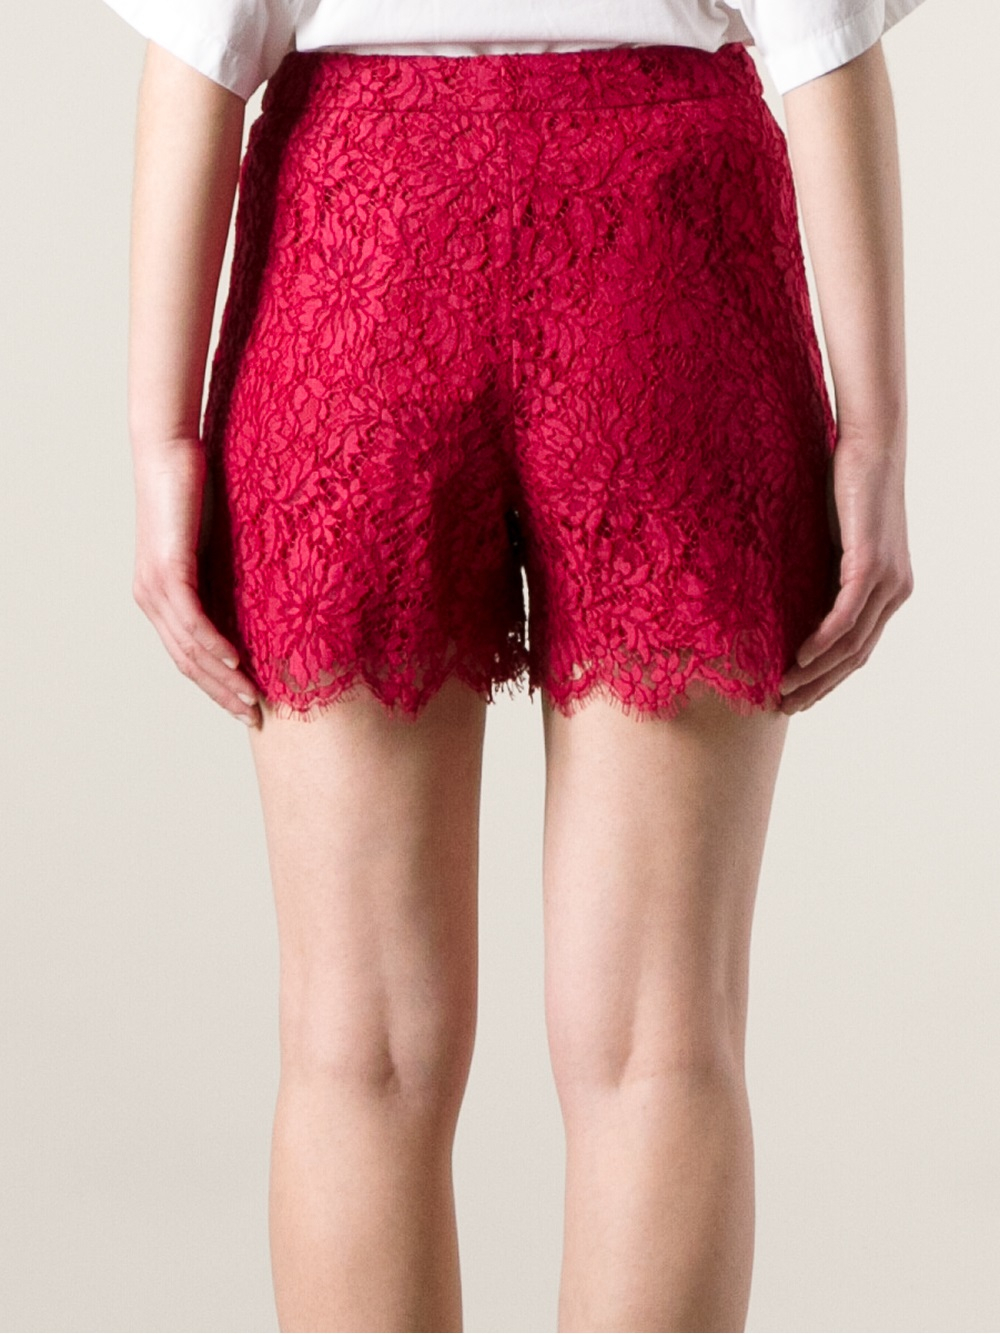 Dolce & gabbana Floral Lace Shorts in Red | Lyst